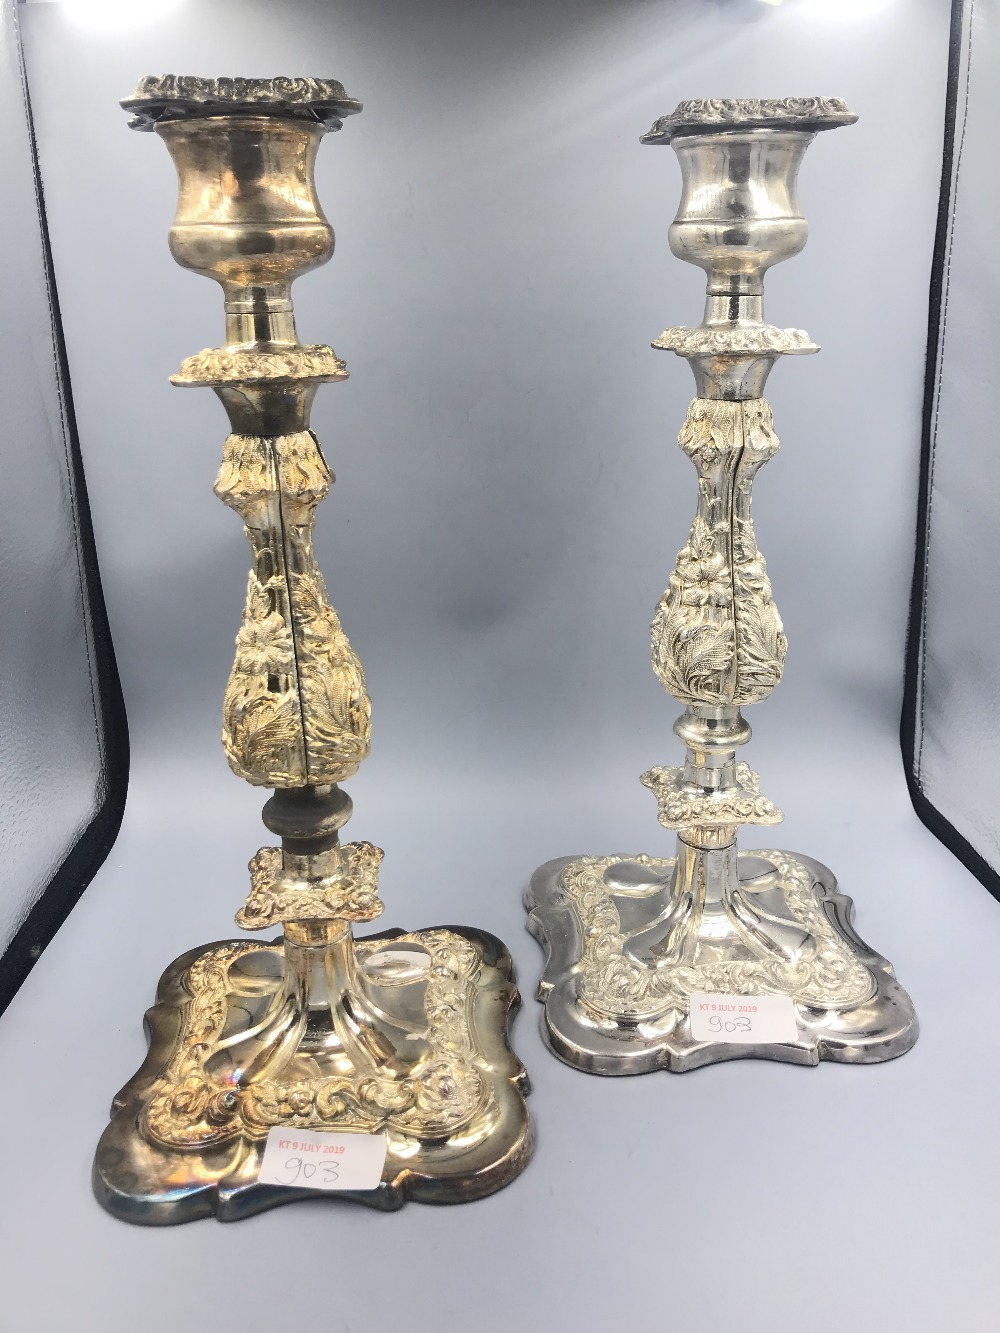 Lot 903 - Pair of heavy white metal candlesticks